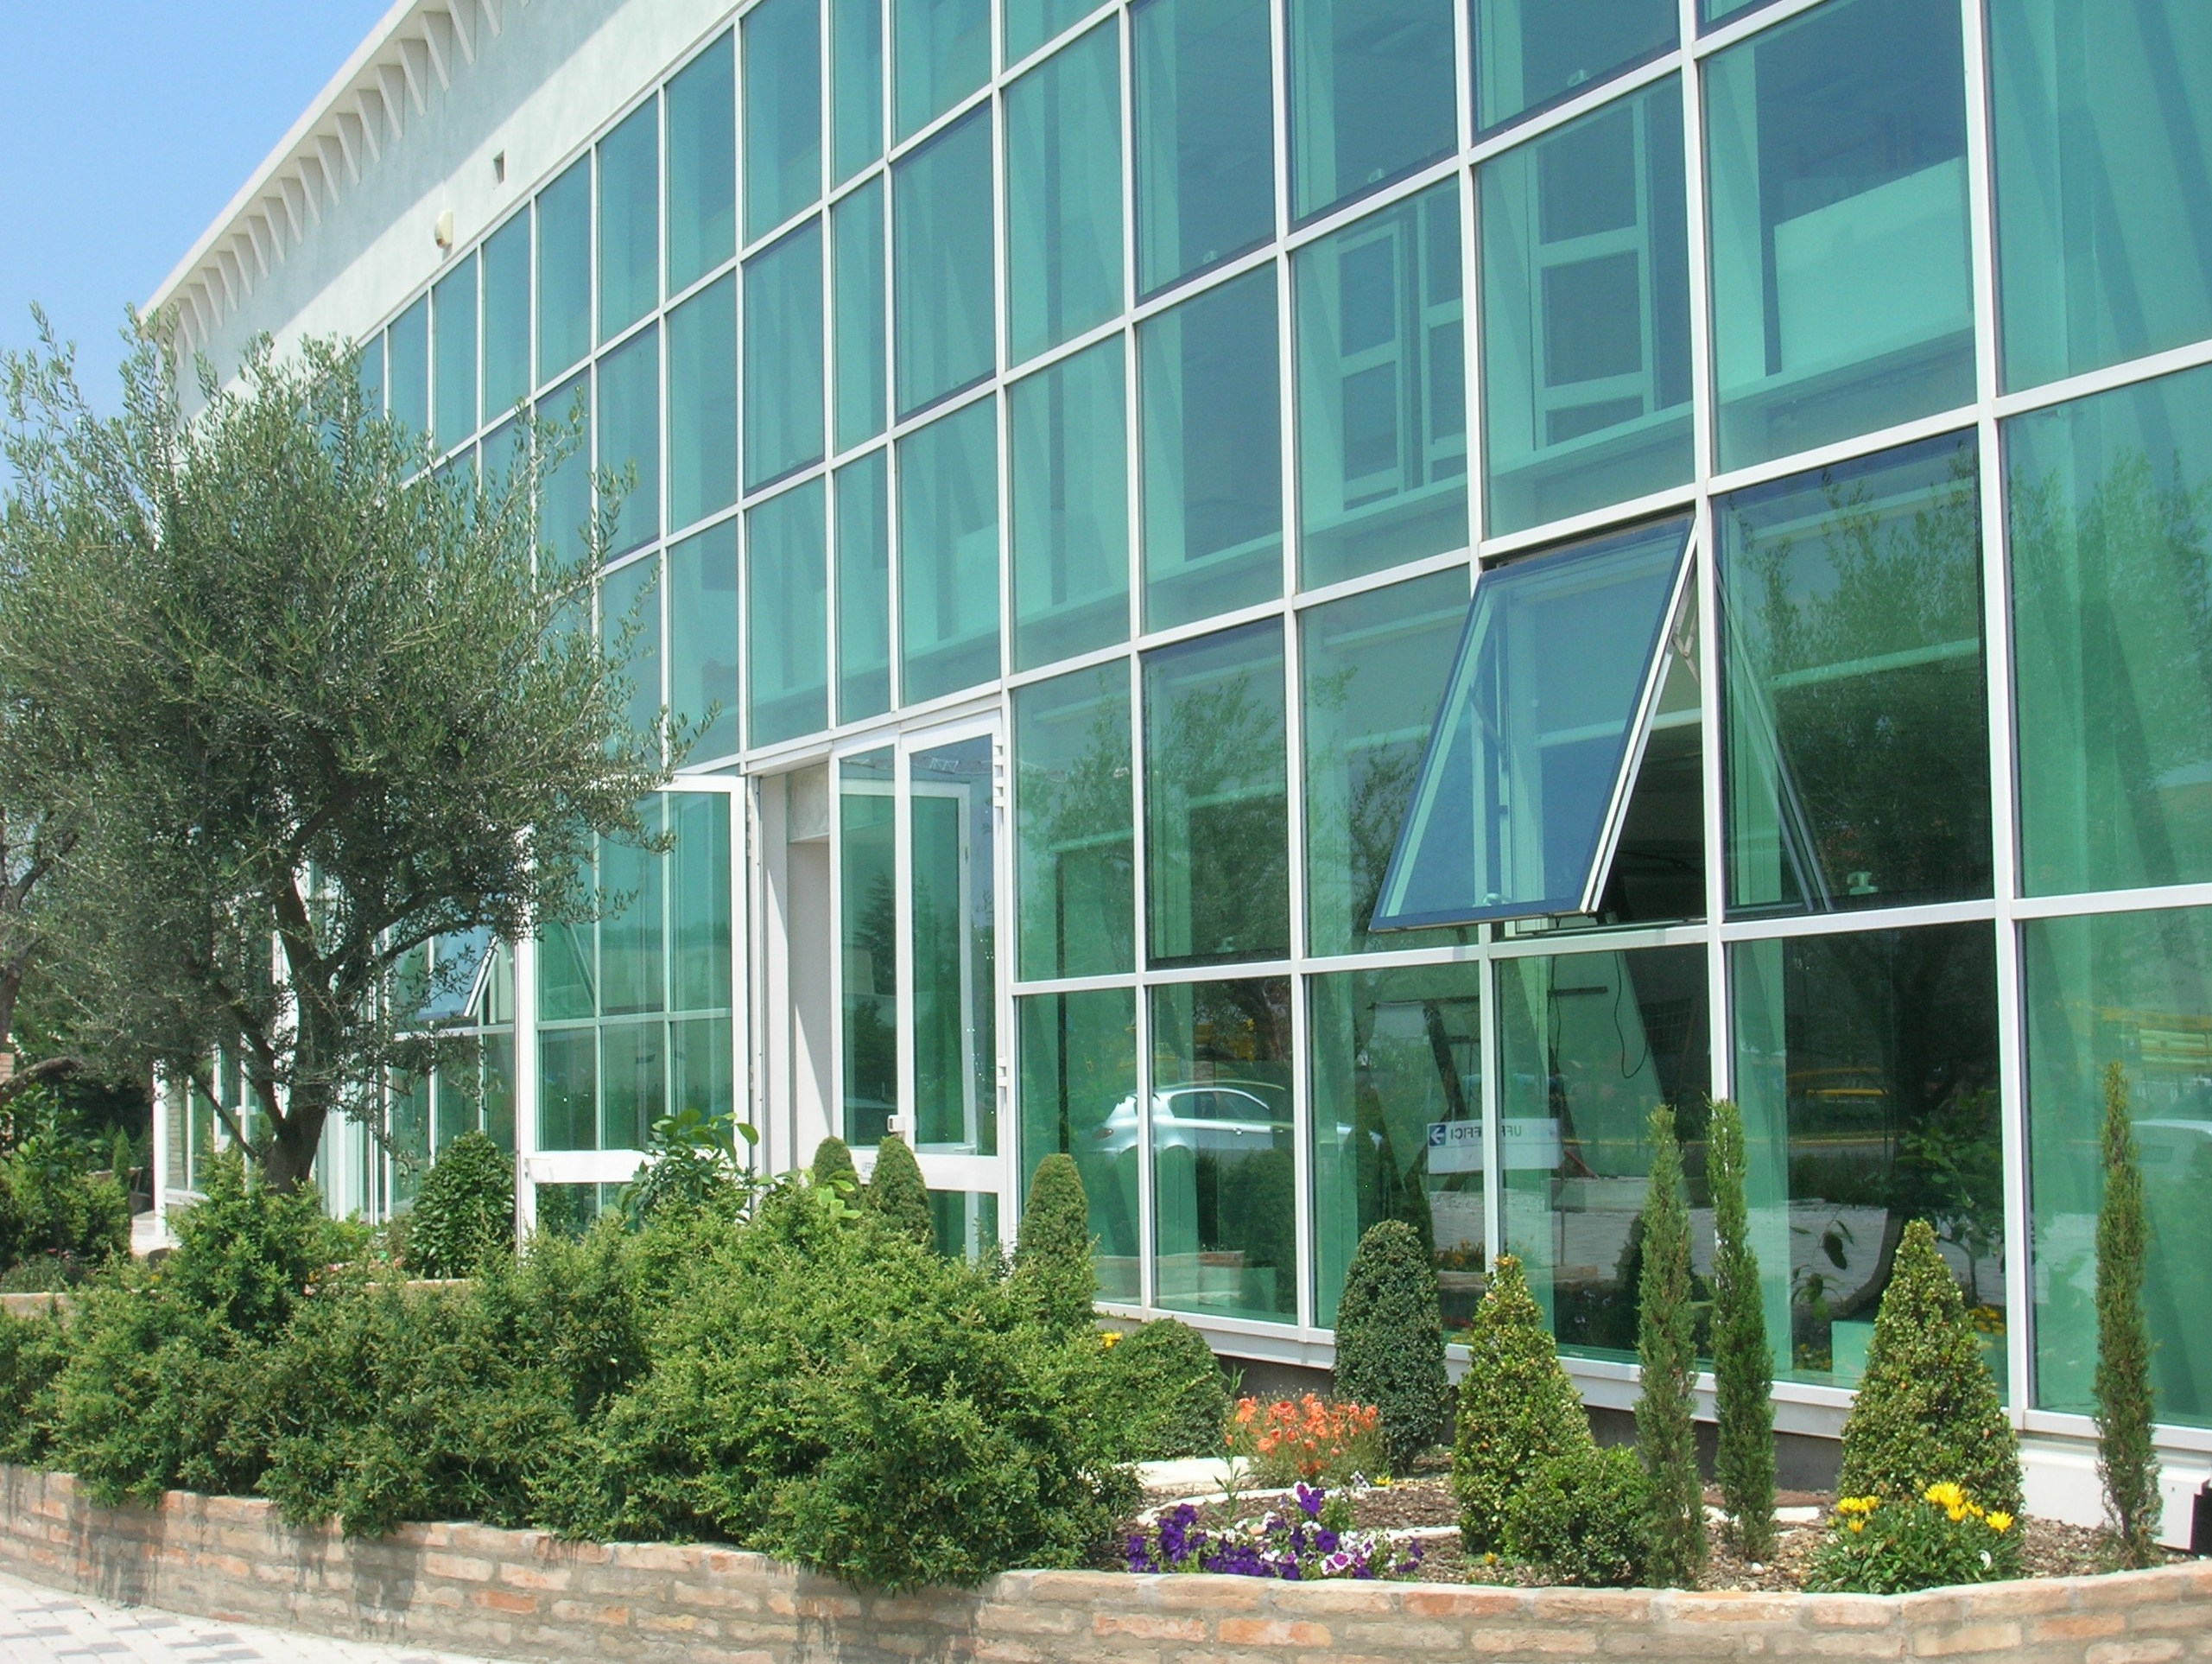 Self Cleaning Float Glass Pilkington Activ Pilkington Italia Regarding Float Glass (View 9 of 15)